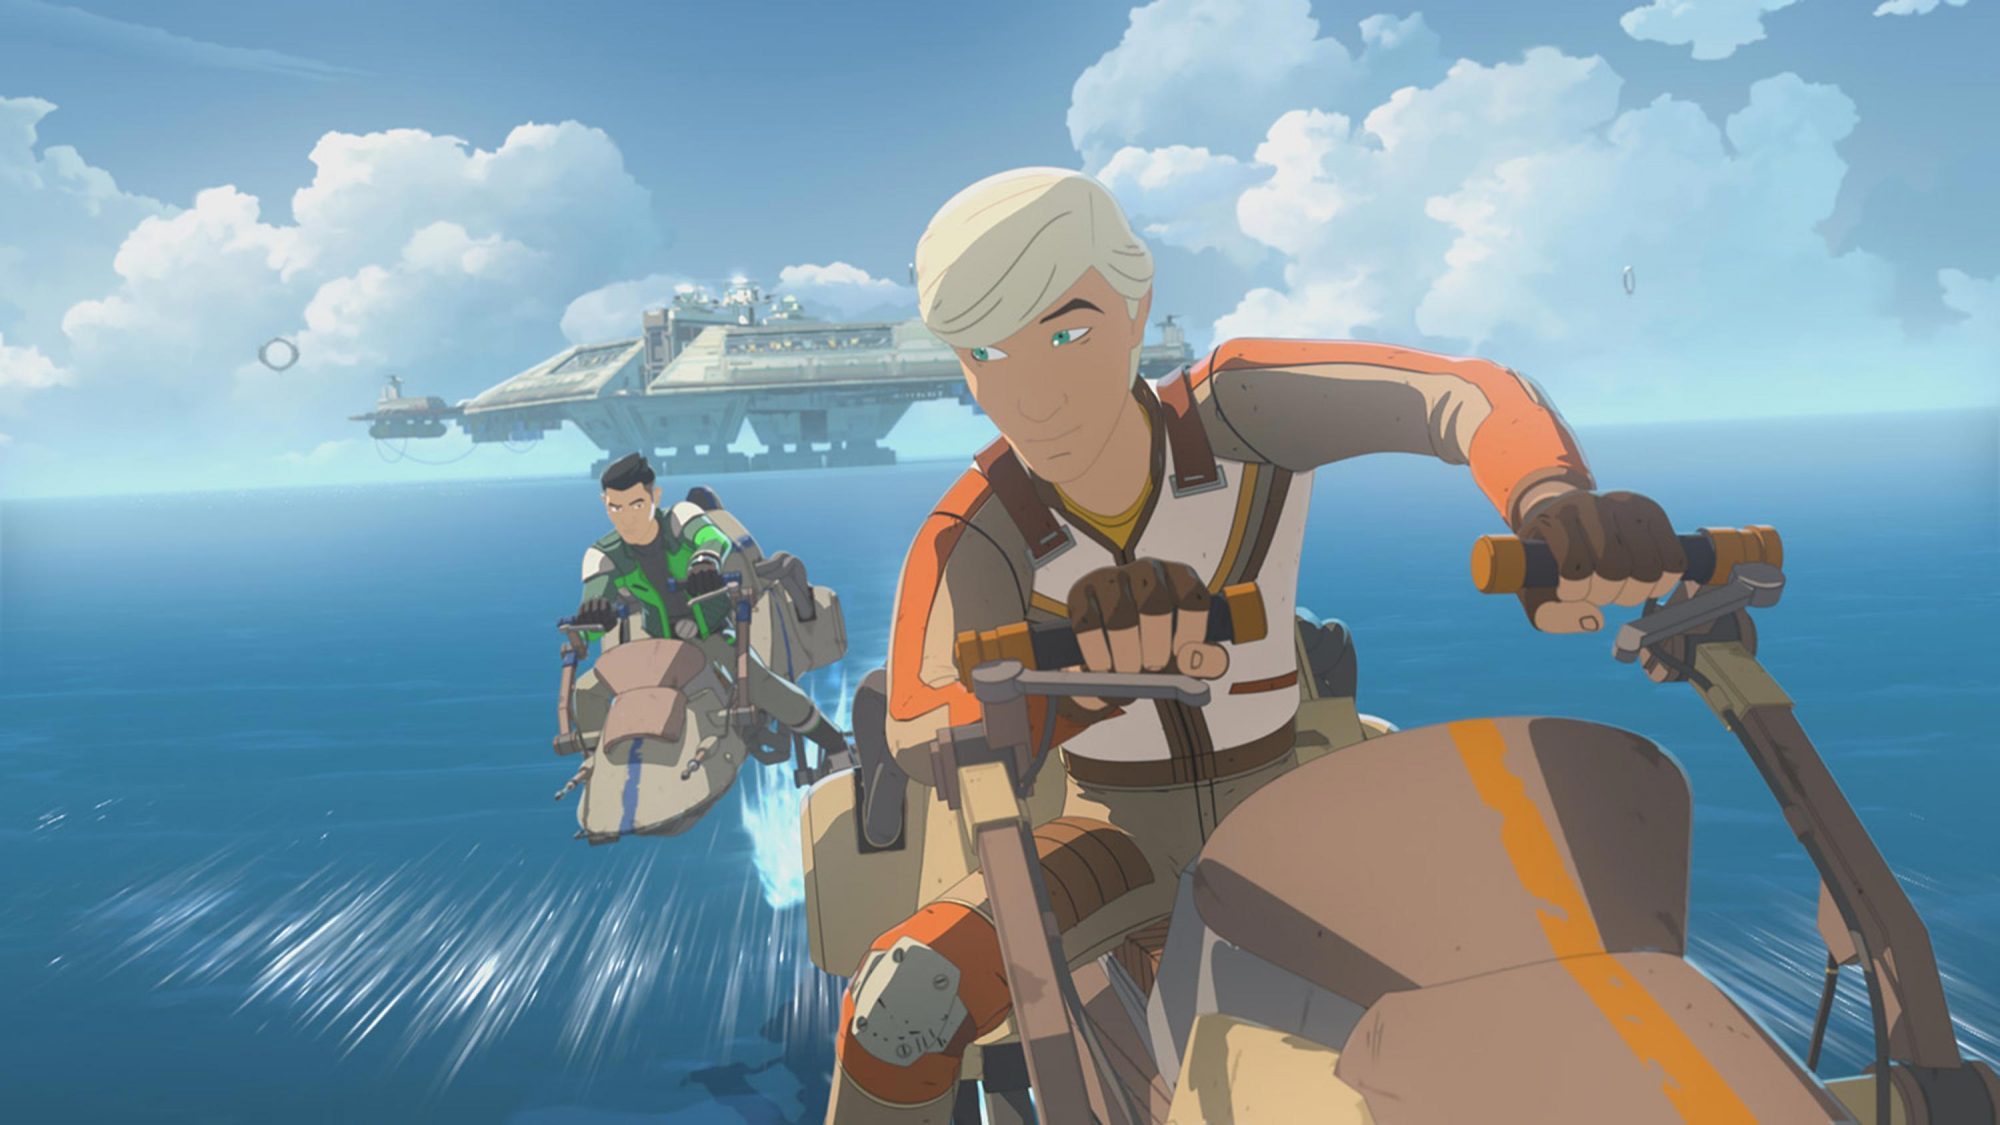 Star Wars: Resistance season 1 finale